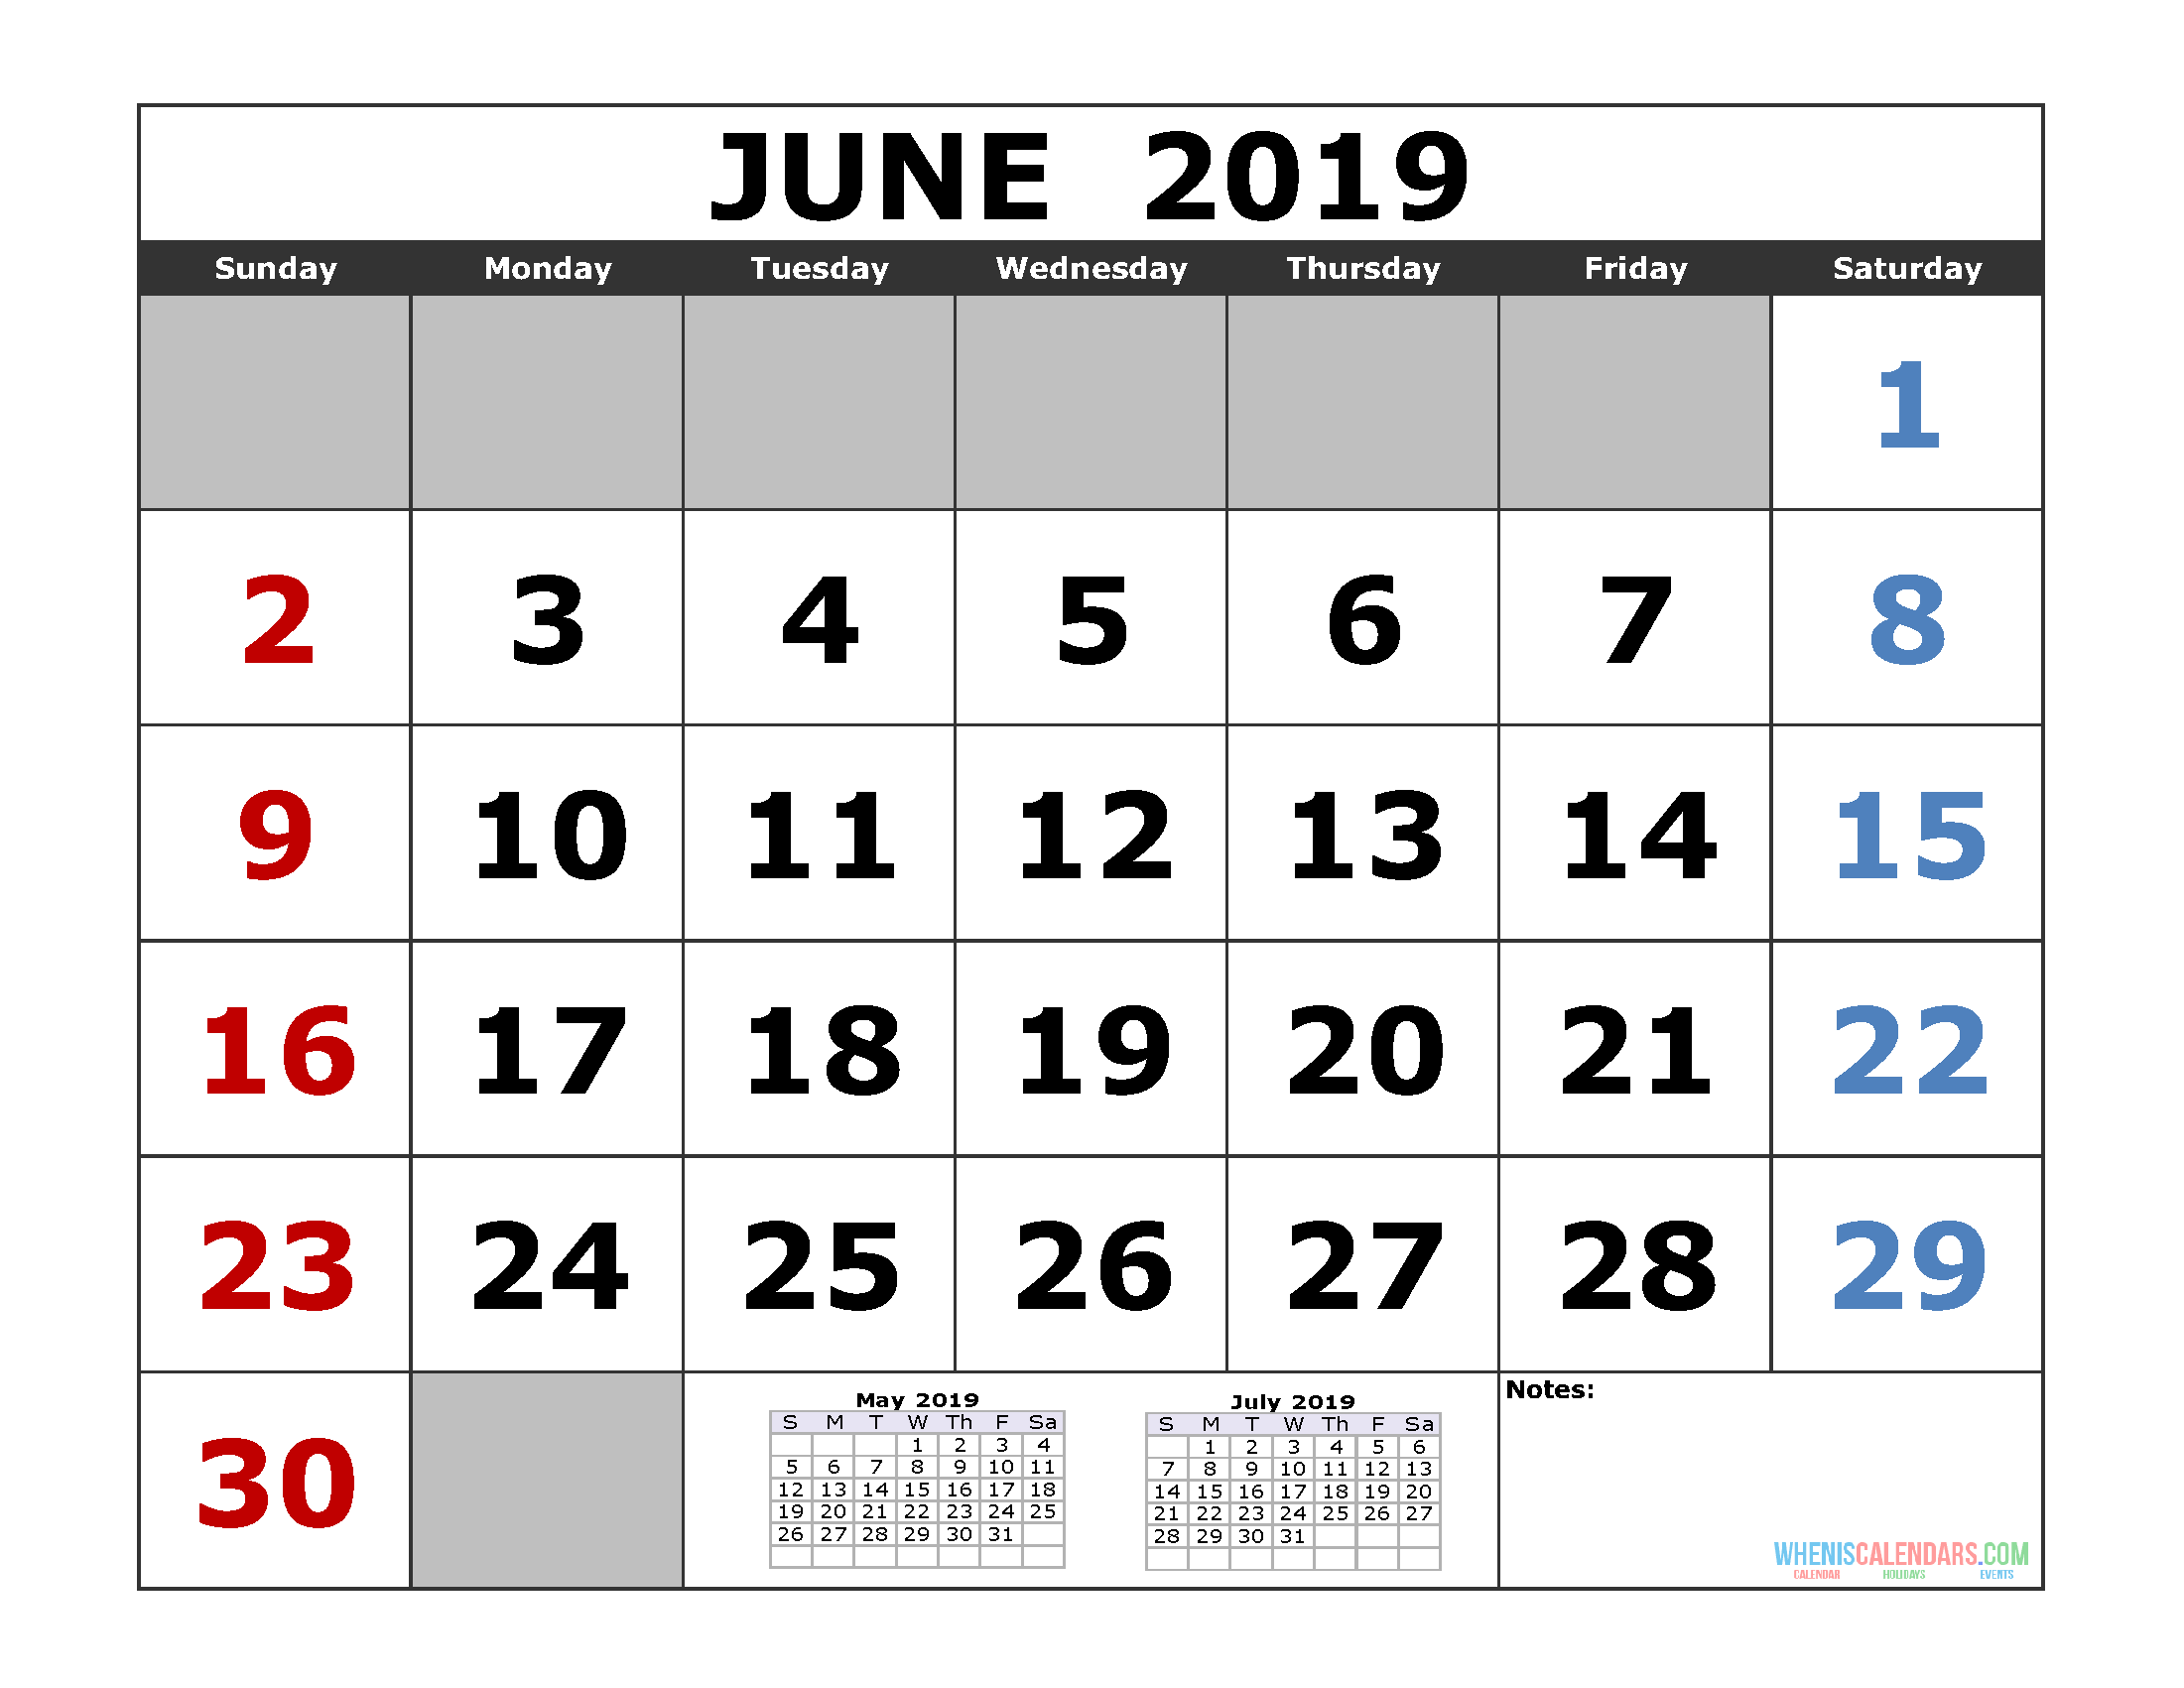 June 2019 Printable Calendar By Week and Month